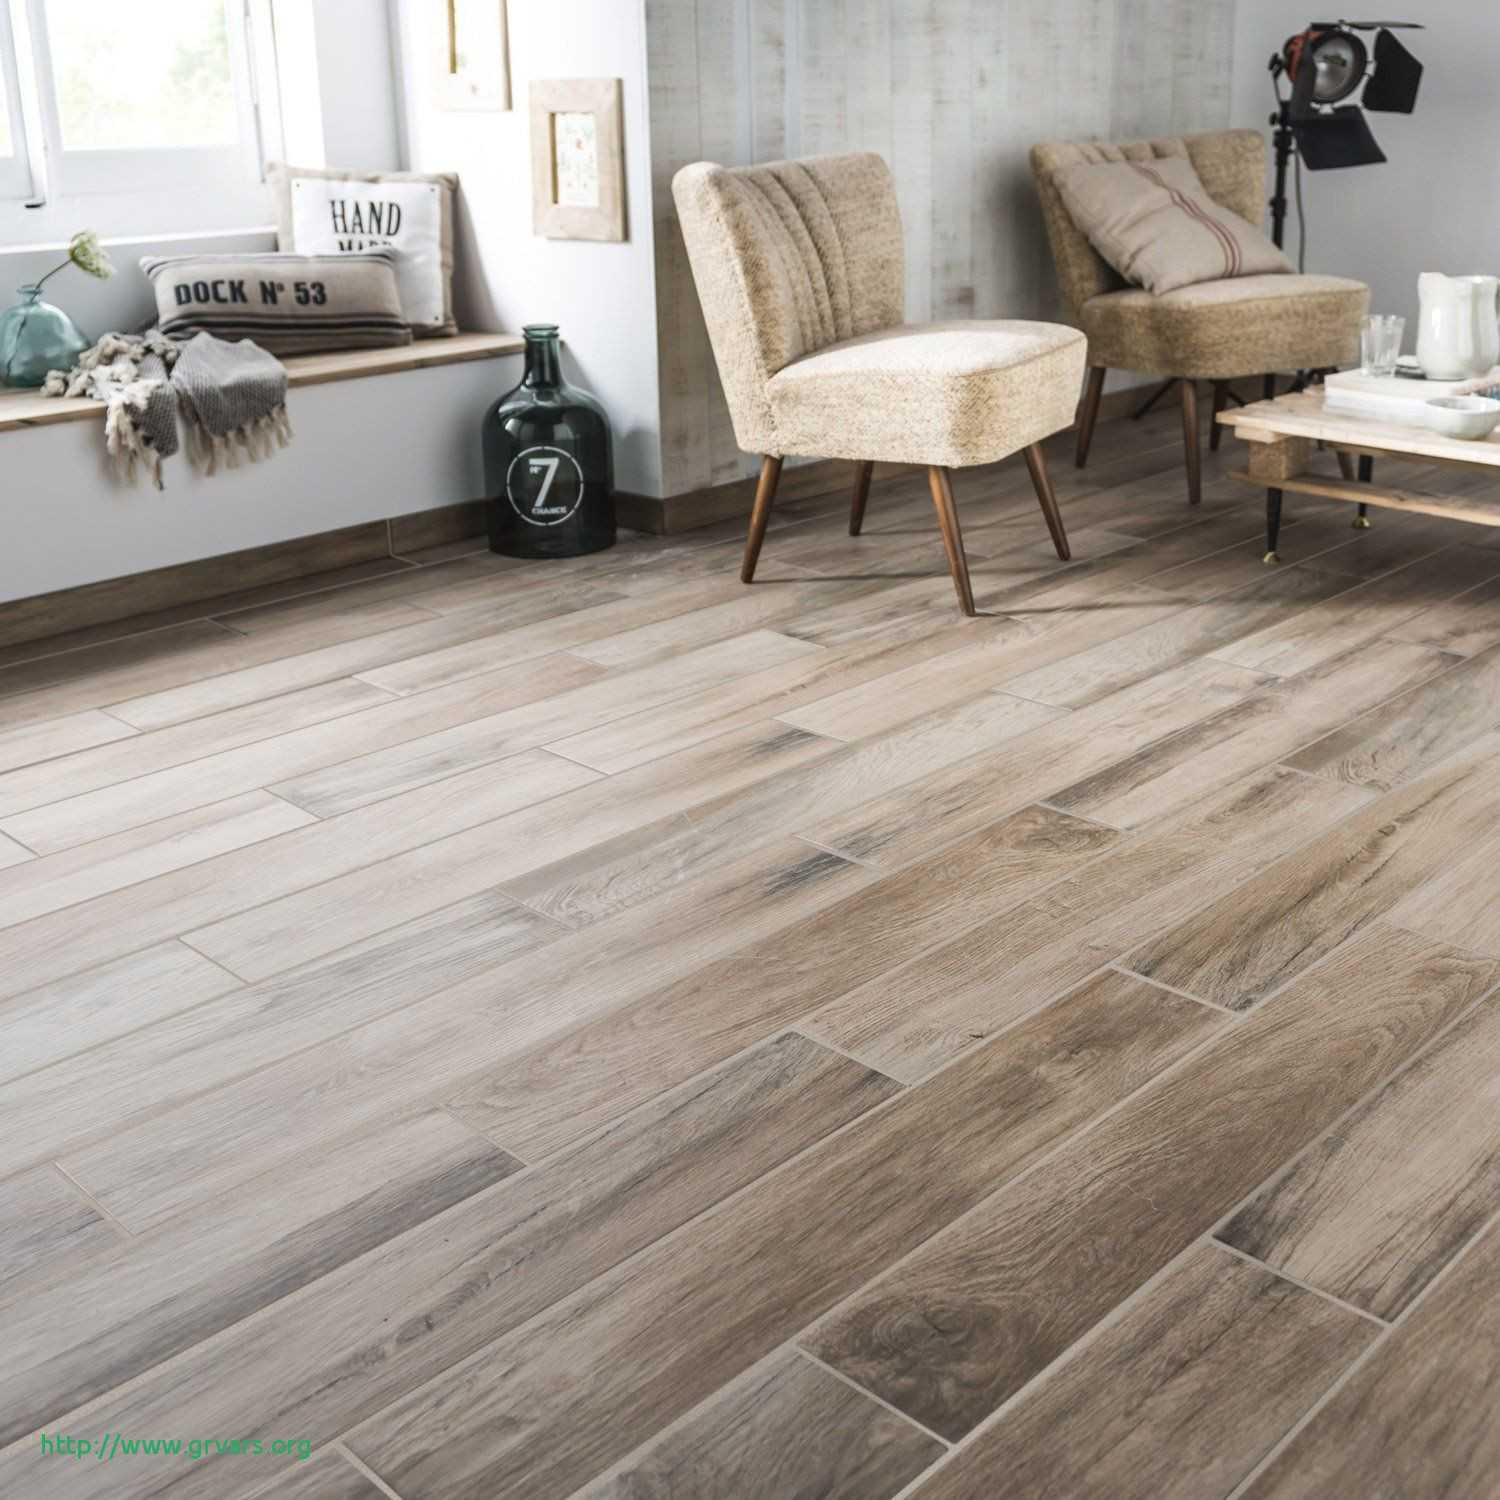 where to buy hardwood flooring near me of hazy hardwood floors luxe flooring near me flooring sale near me intended for hazy hardwood floors charmant parquet wood flooring parquet floor sanding and polished following